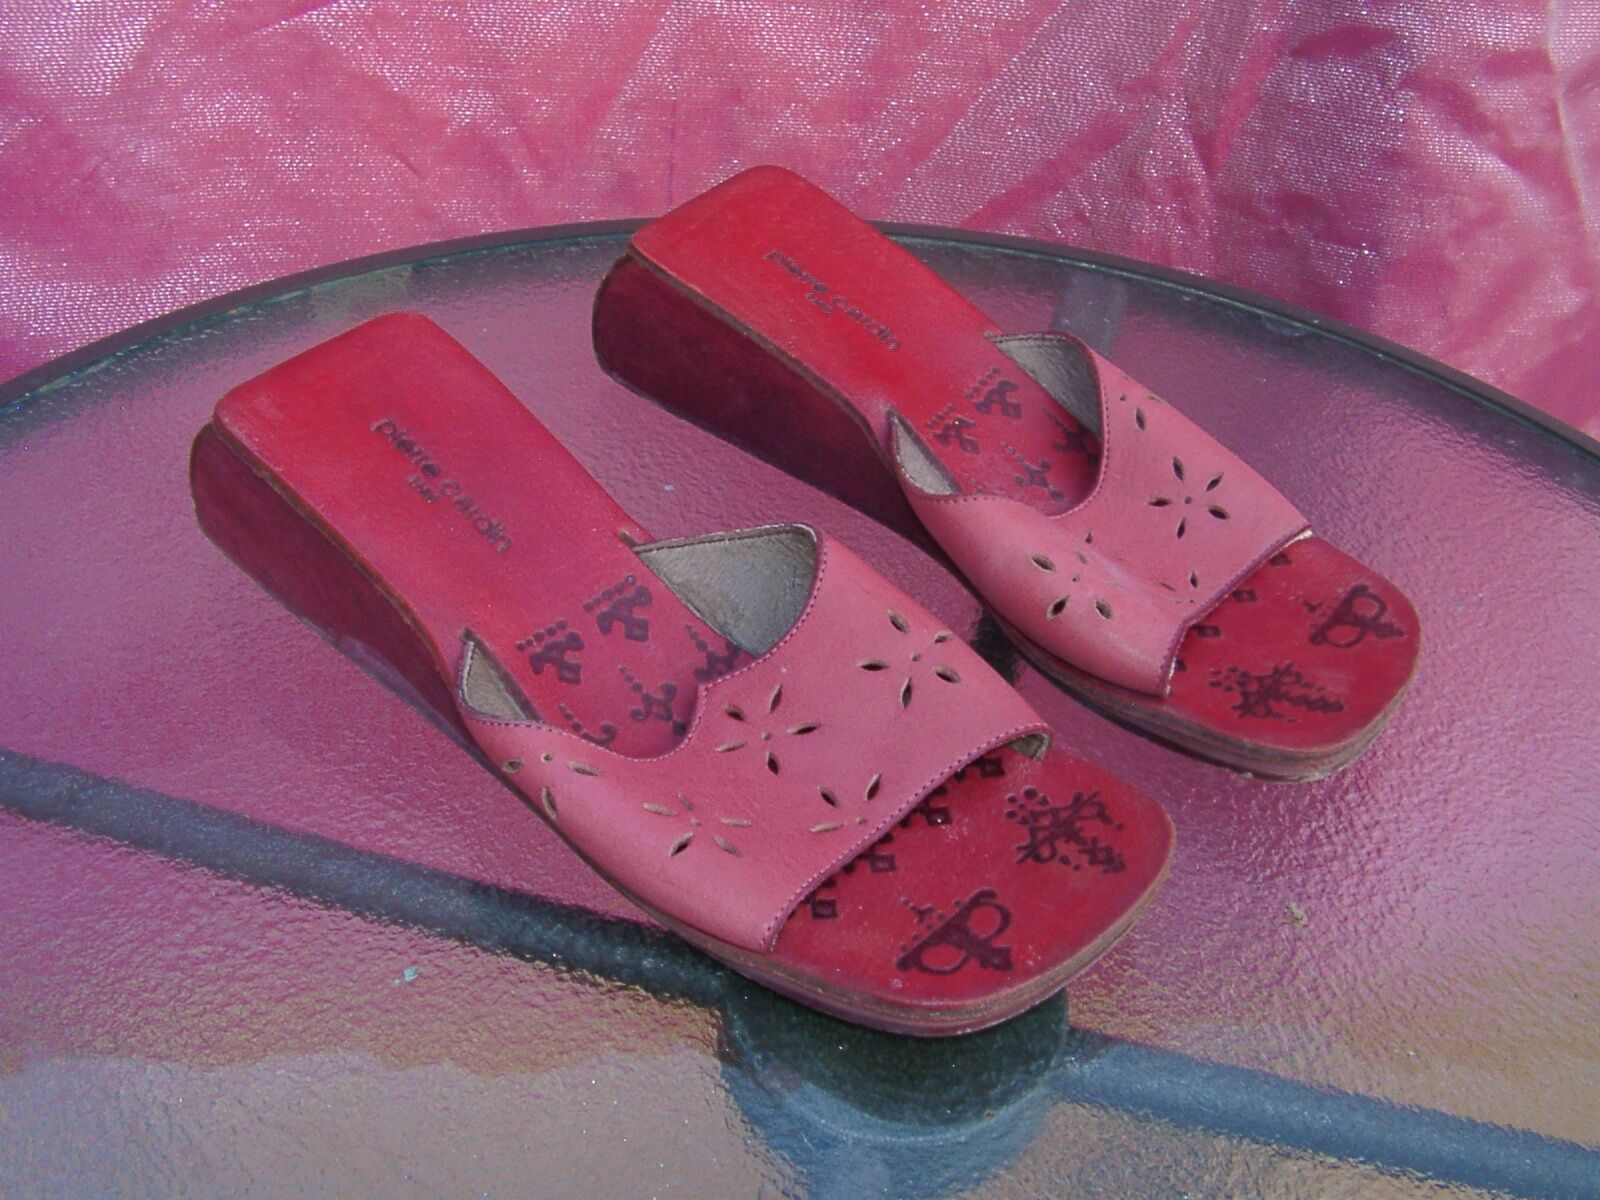 Pierre Cardin rosadododo and rojo 2    wedges sandals slides zapatos sz 5.5  Venta barata